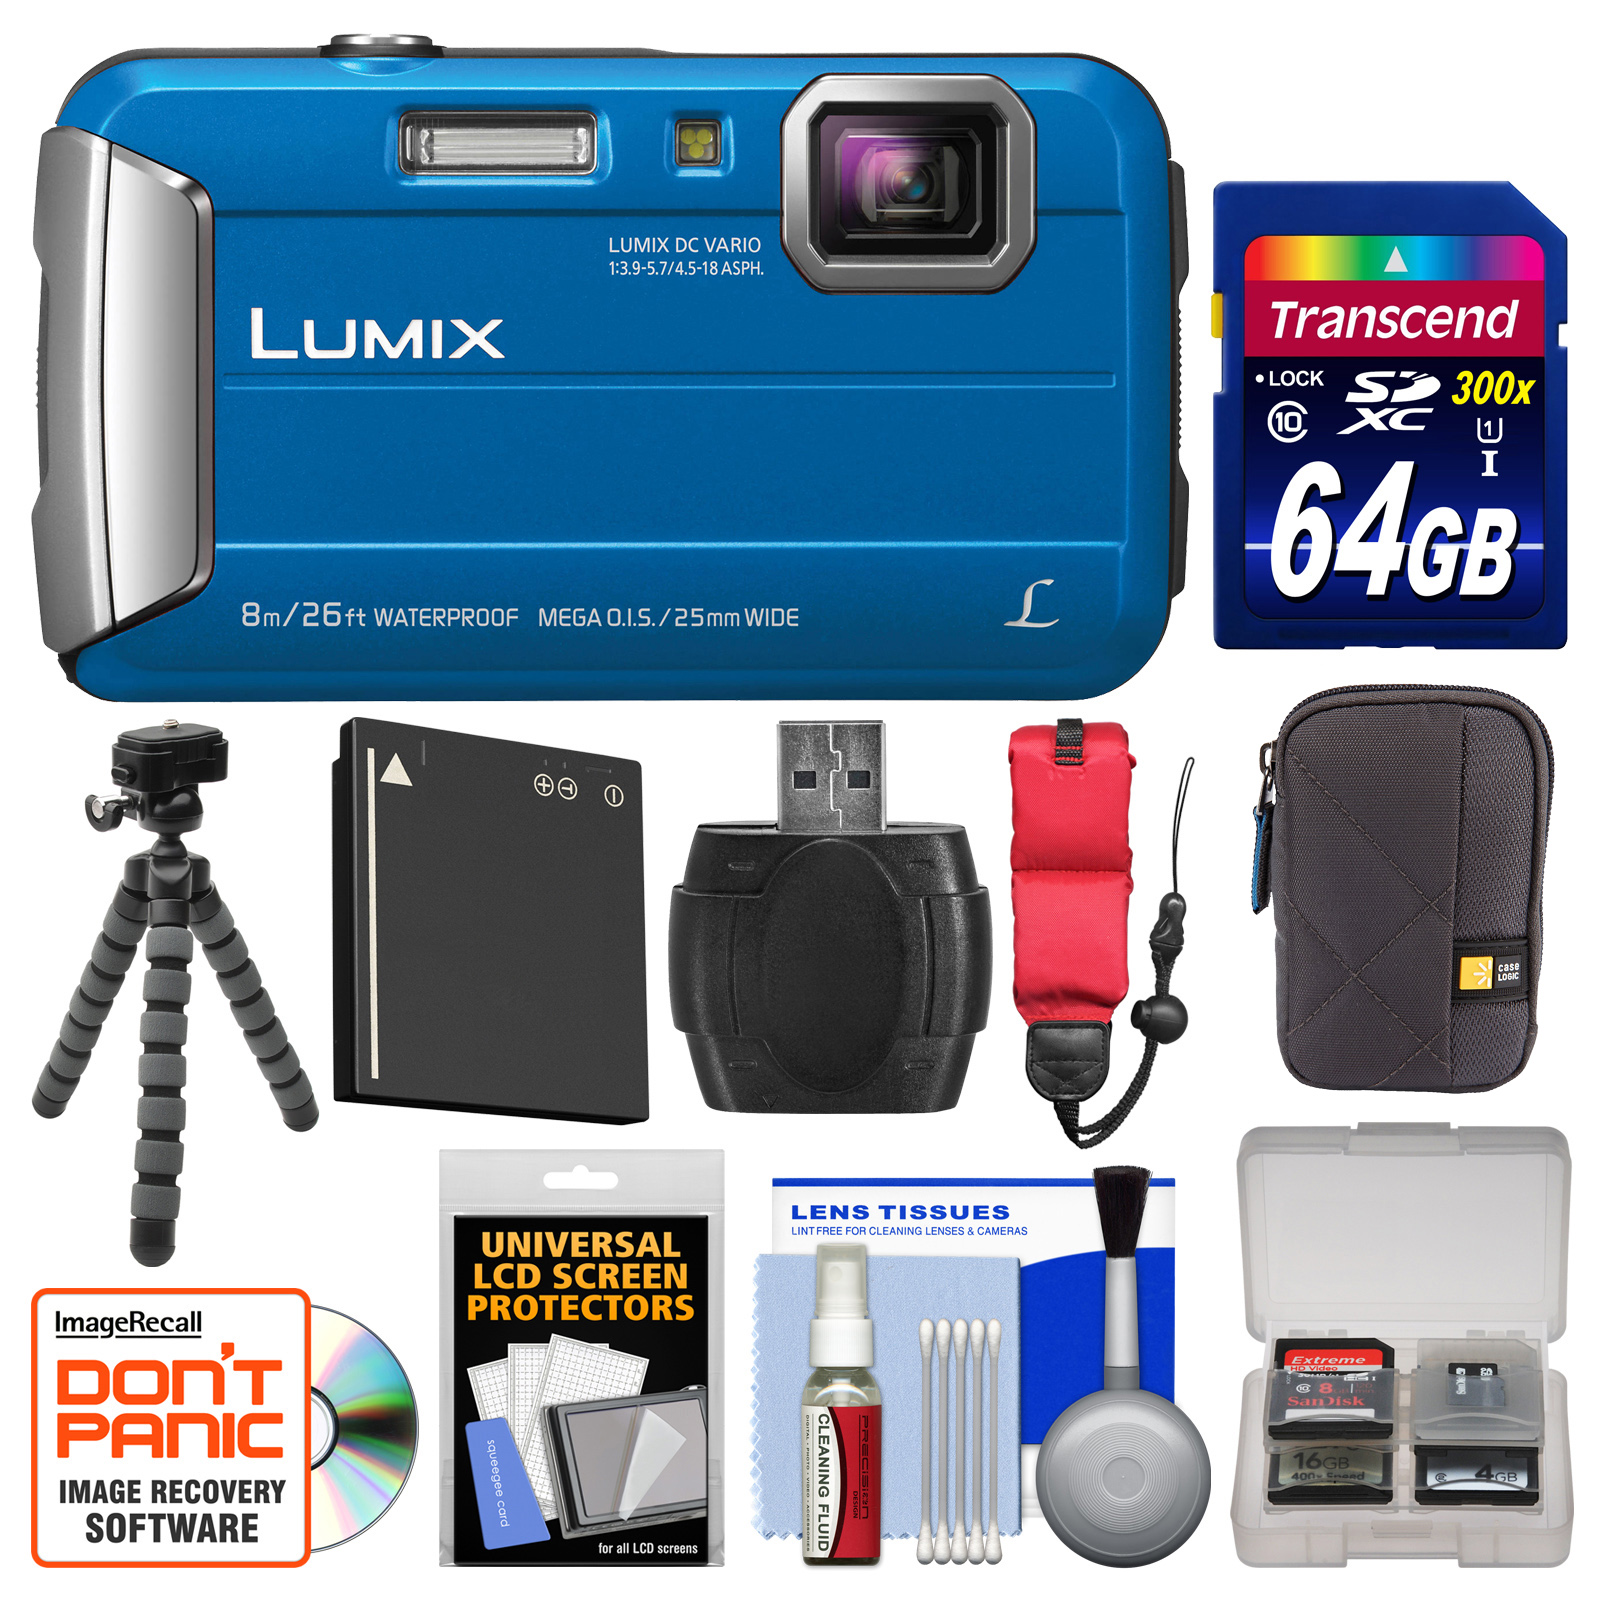 Panasonic Lumix DMC-TS30 Tough Shock & Waterproof Digital Camera (Blue) with 64GB Card +